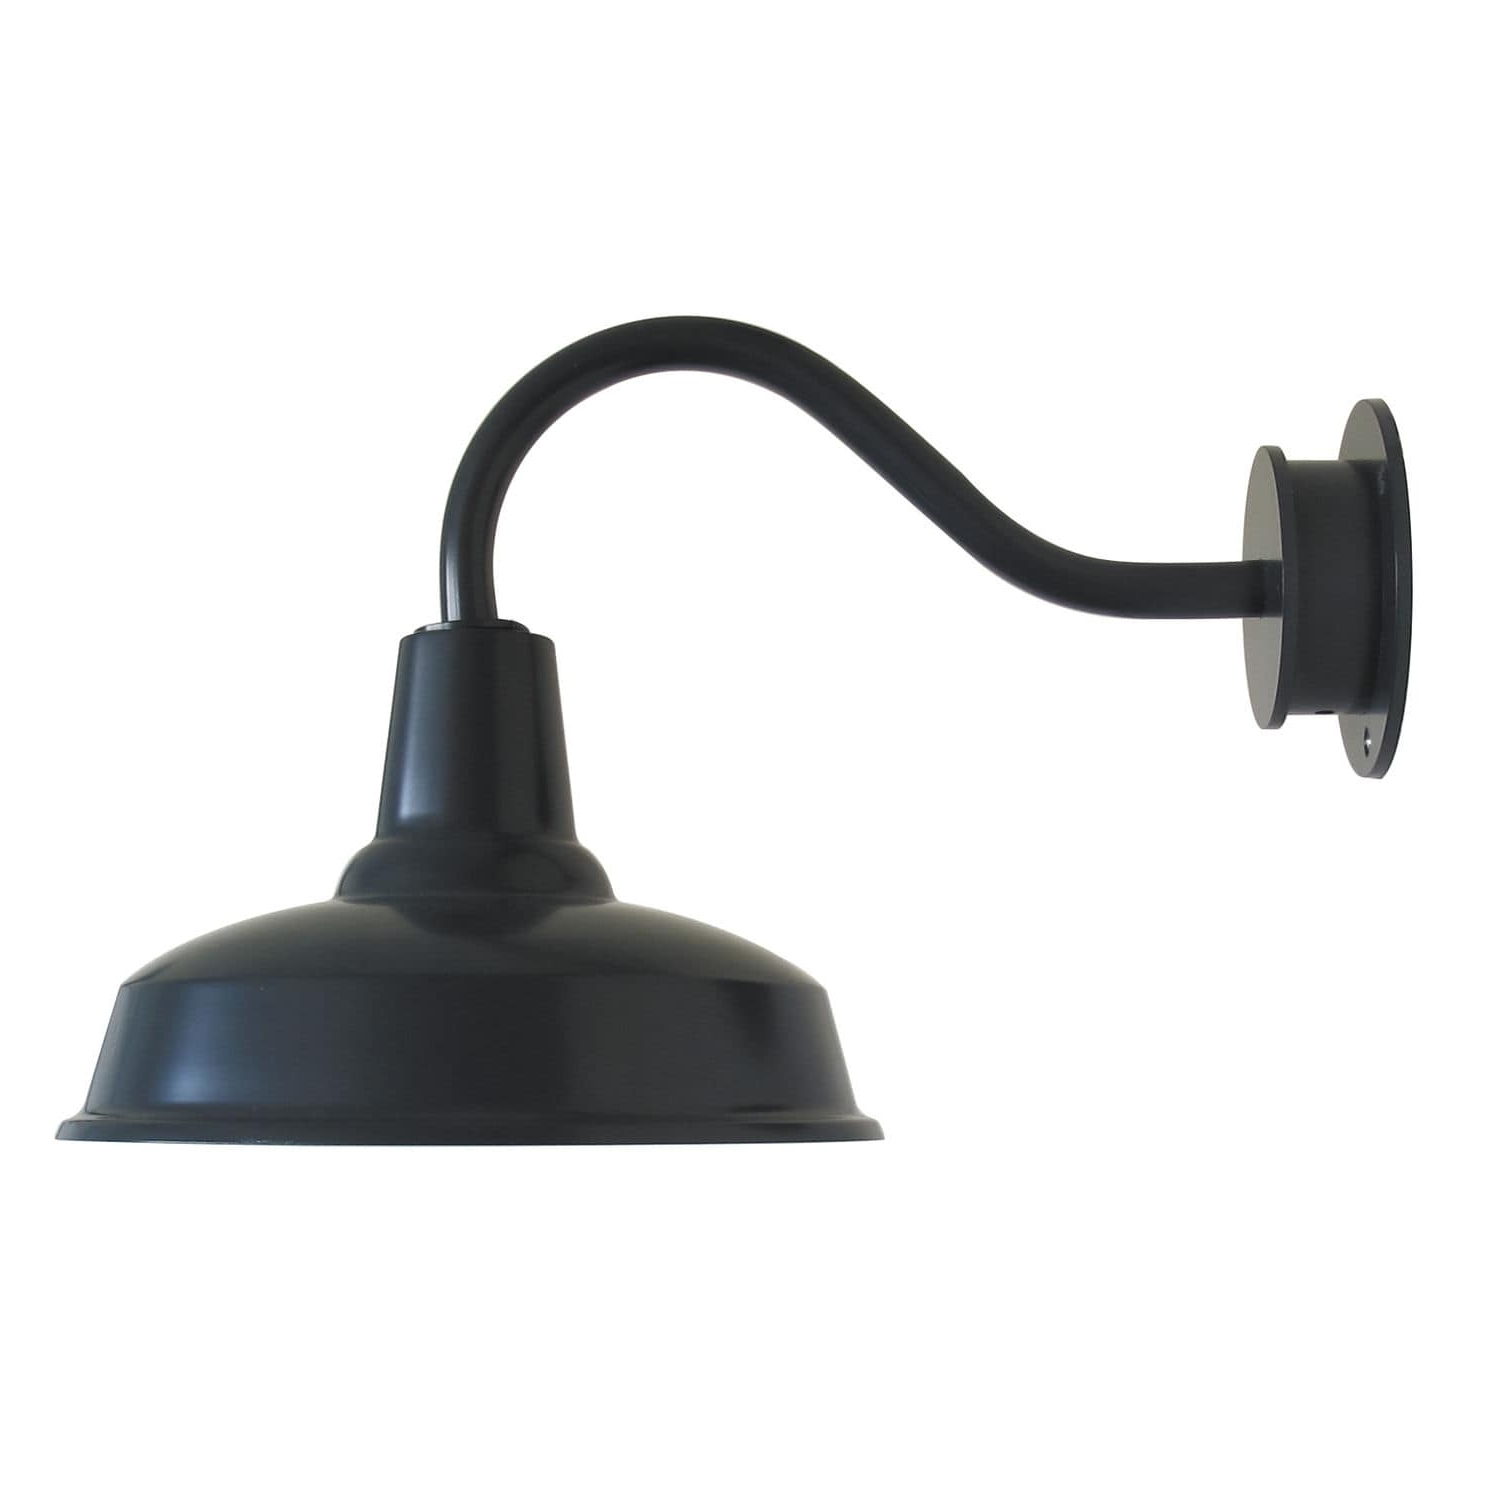 Well Known Industrial Outdoor Wall Lighting Regarding Industrial Style Wall Light / Outdoor / Metal / Led – Picco Barn (View 18 of 20)